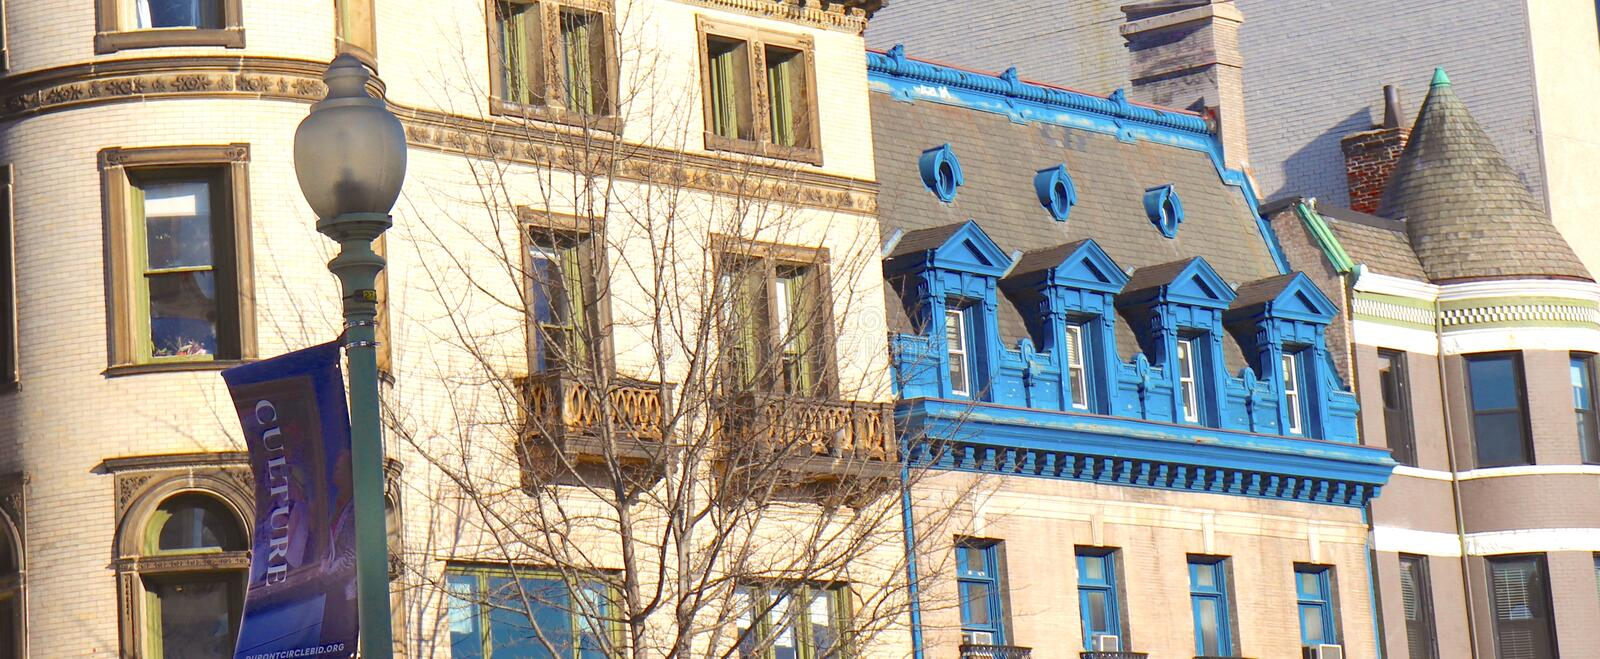 Blue Trimmed Balconies on Historic Buildings. Architecture wins the medal in this partial view of a city block in Washington DC with a sign declaring Culture royalty free stock photos